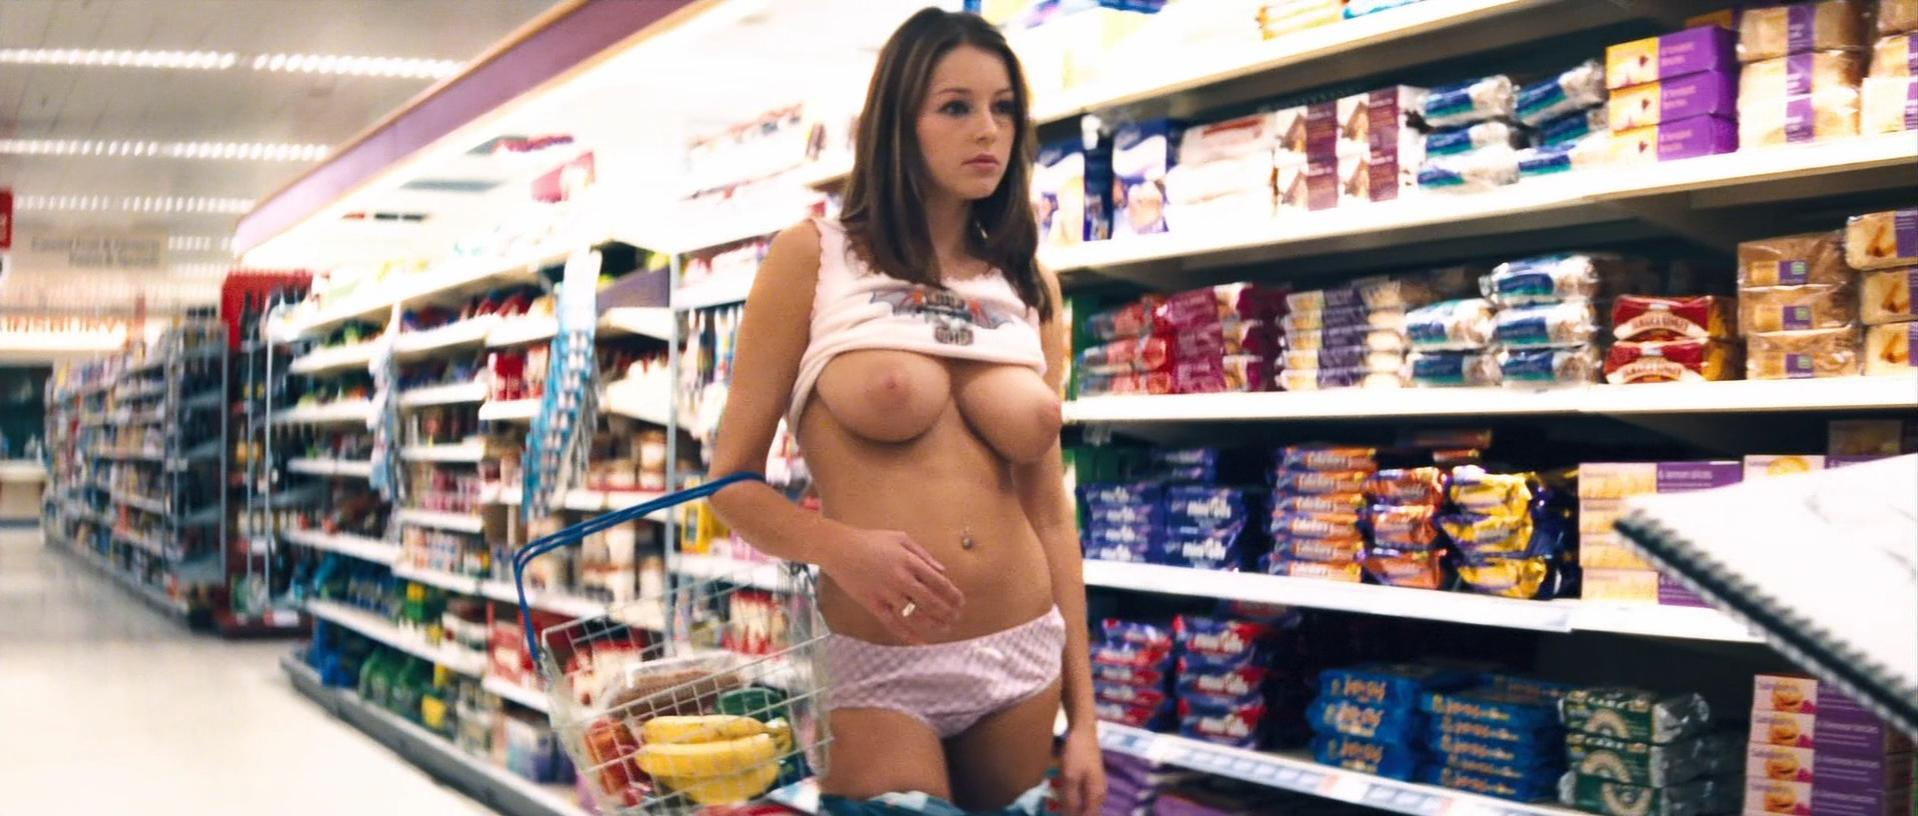 Keeley hazell nude in store